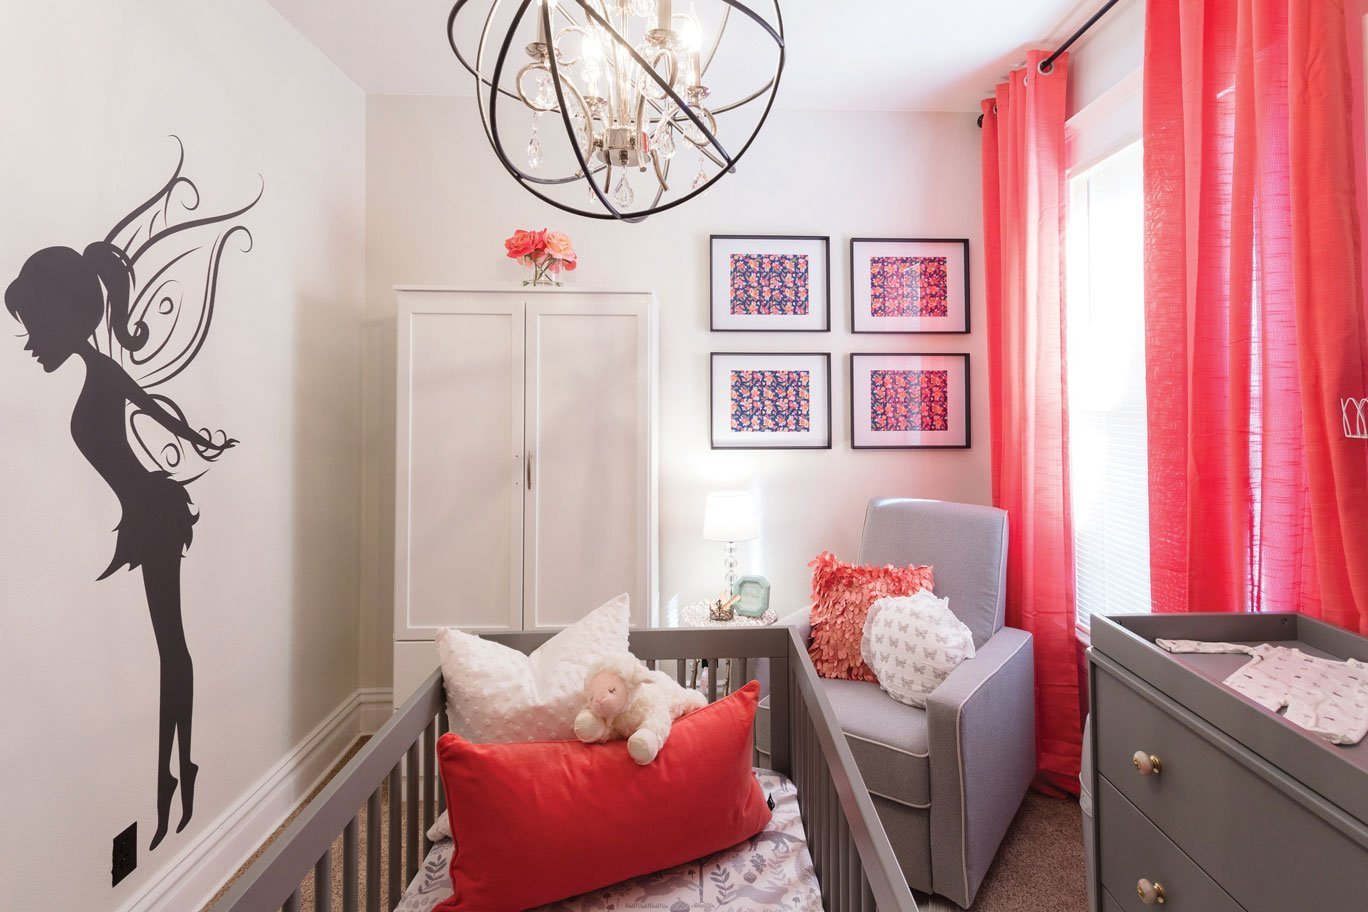 Stylish nursery with wall art